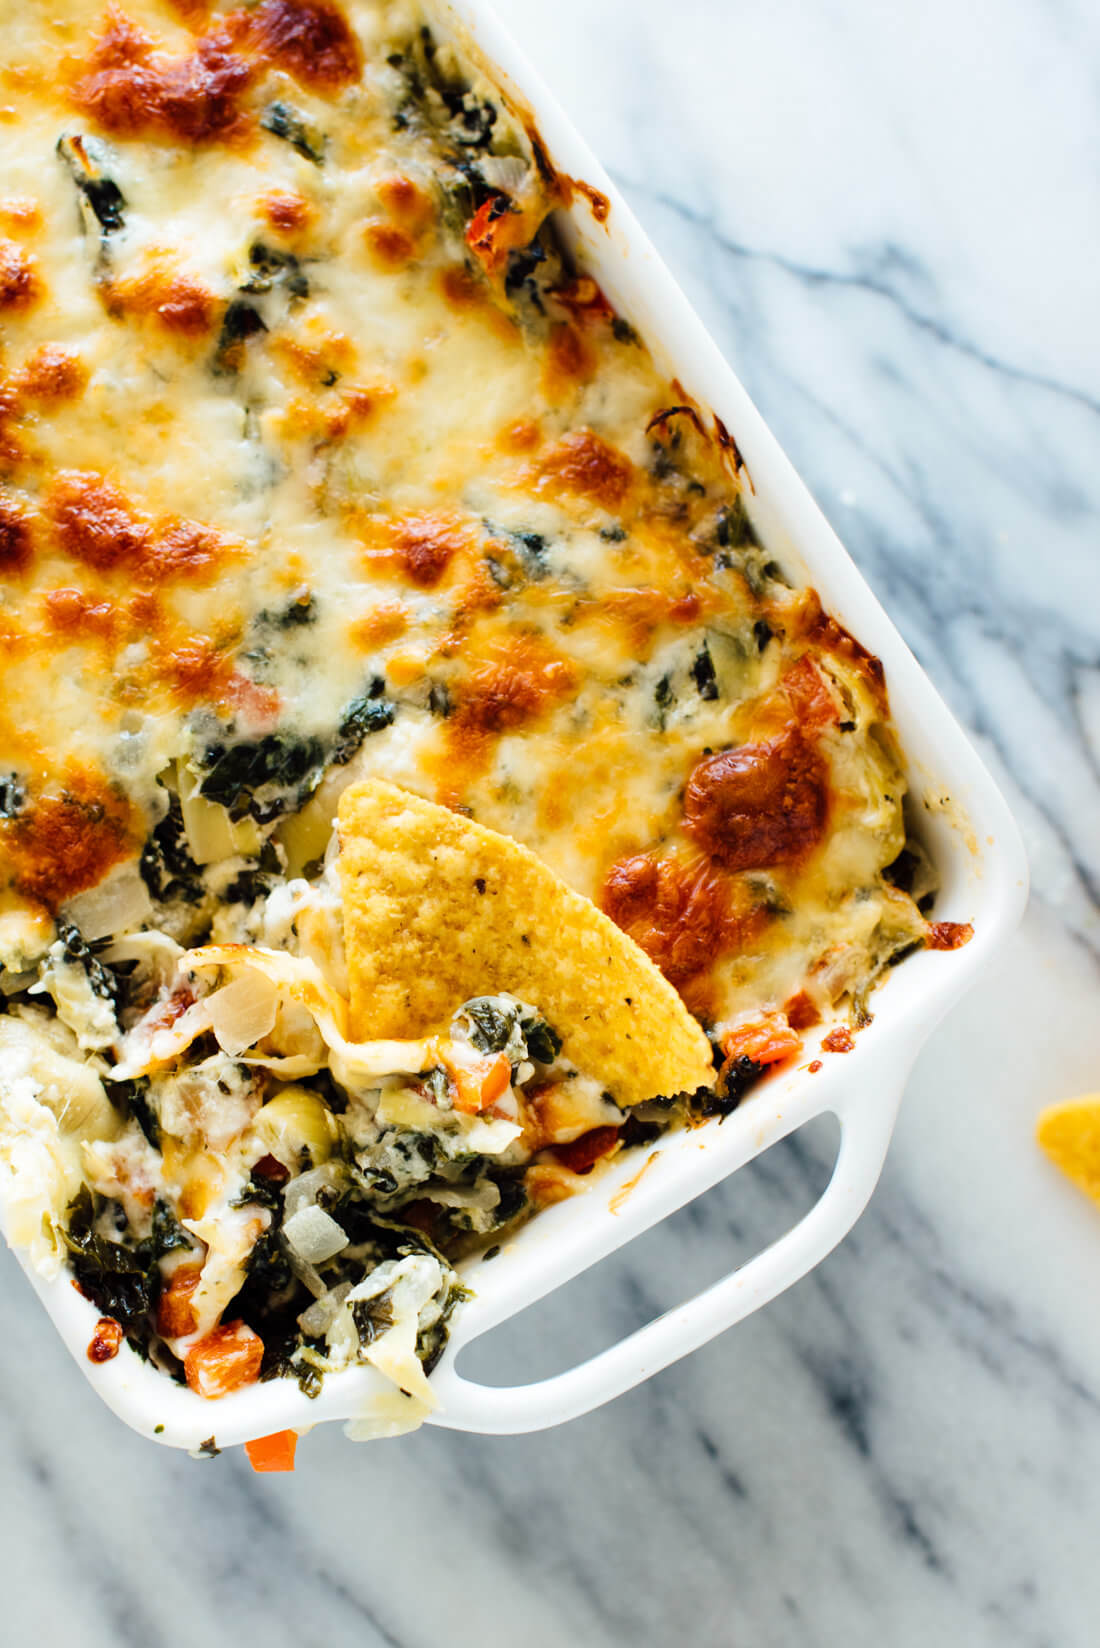 The best cheesy baked spinach artichoke dip, made lighter with extra veggies and no mayonnaise! Everyone will love this appetizer recipe.